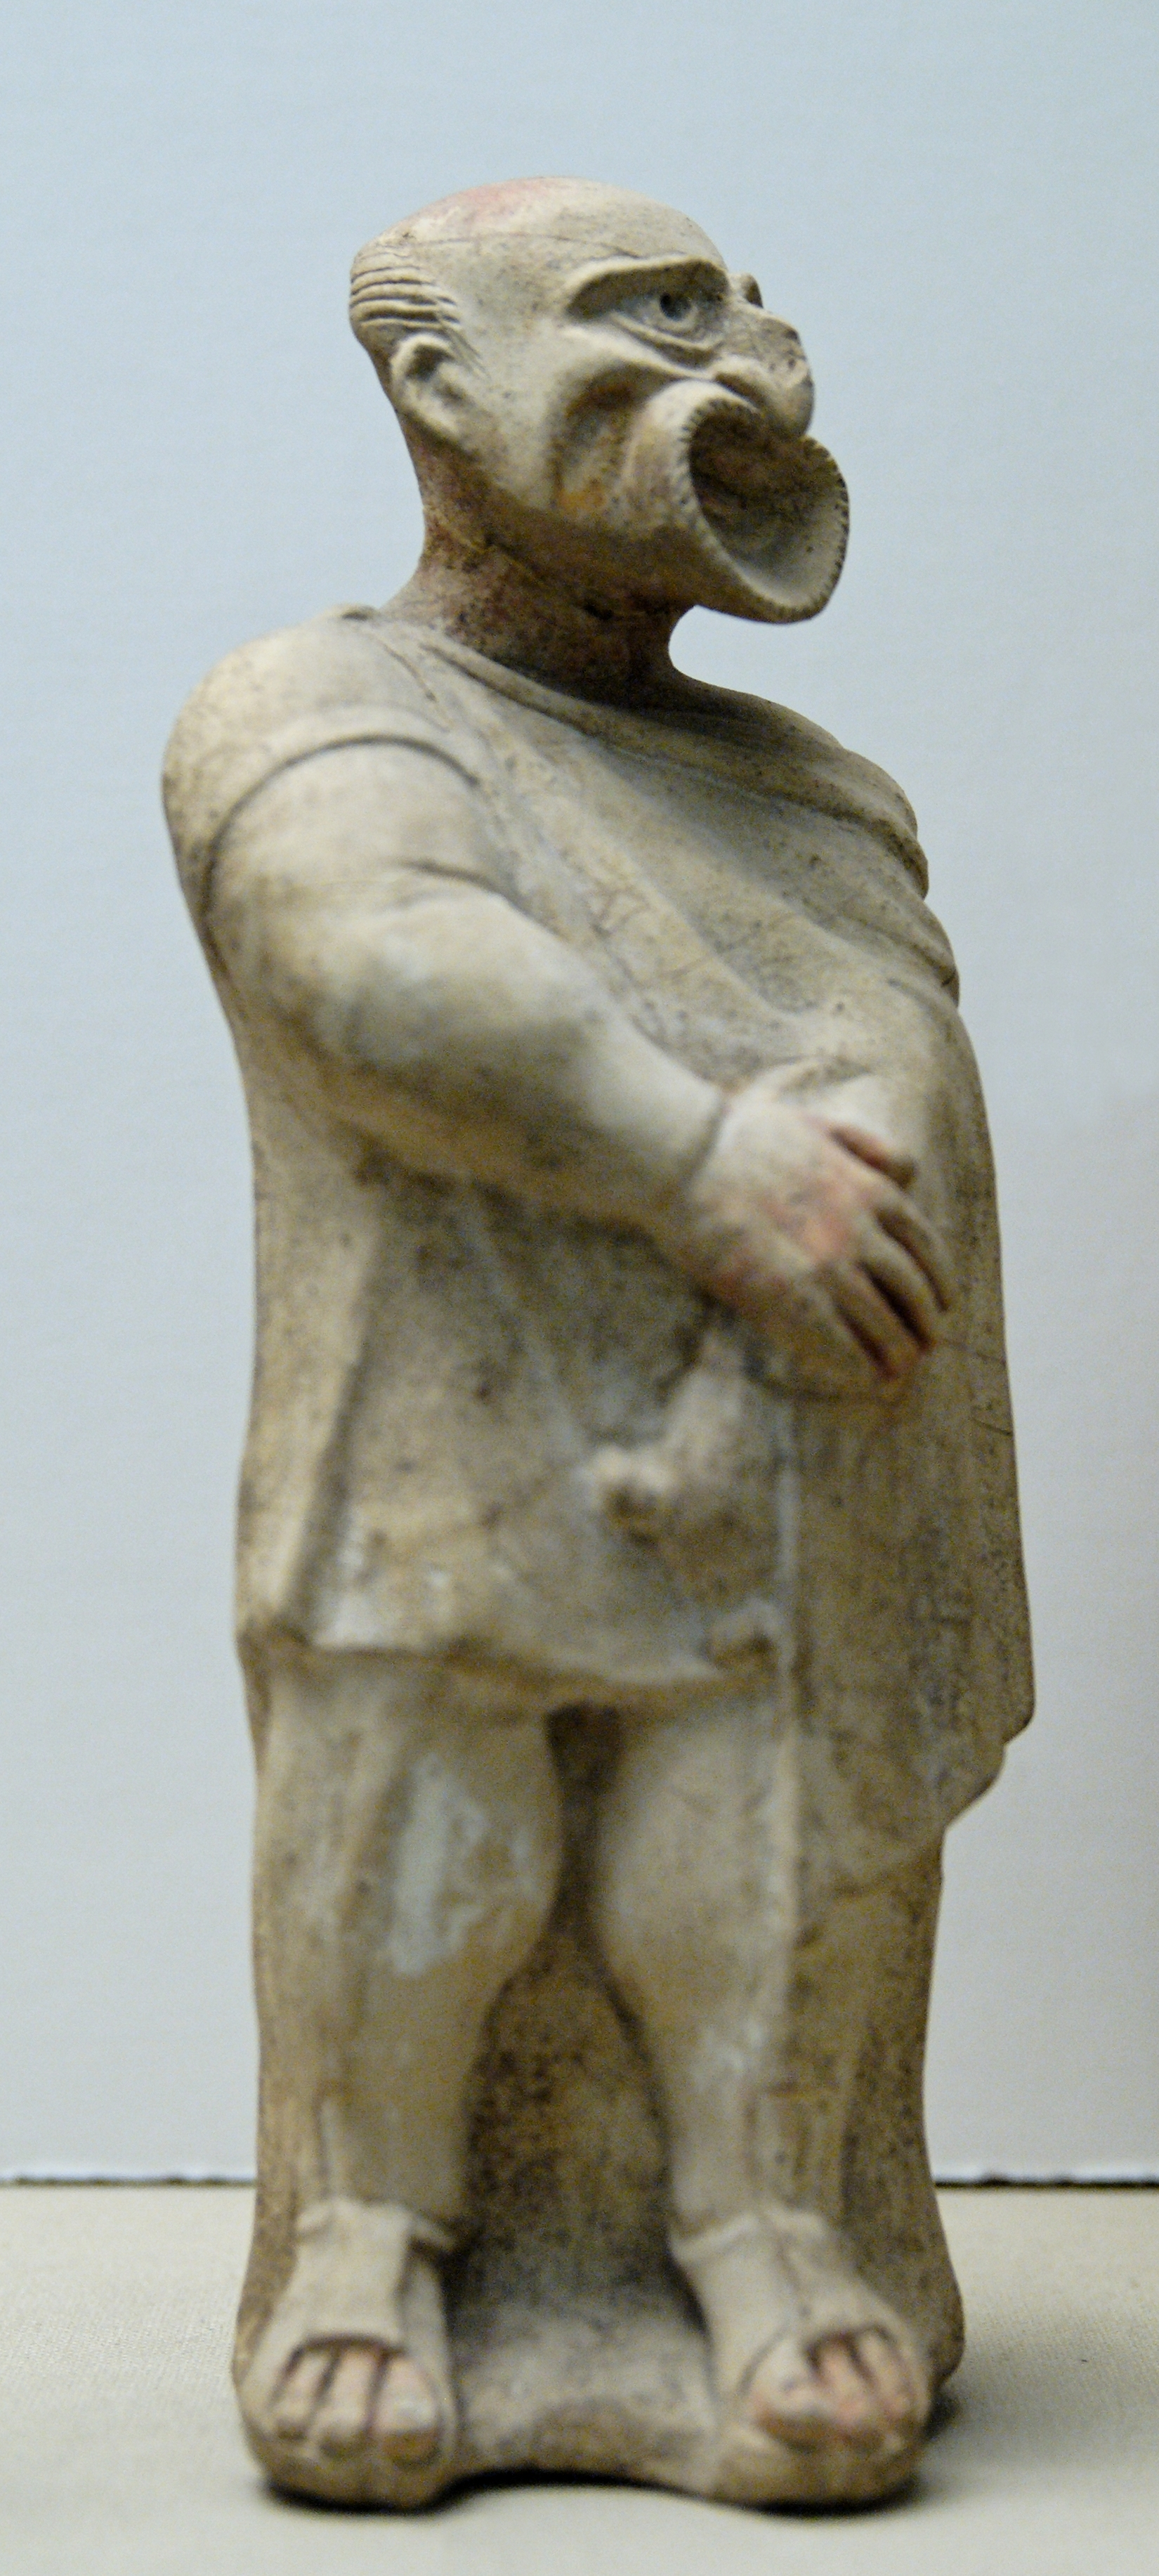 http://upload.wikimedia.org/wikipedia/commons/4/49/Figurine_actor_BM_TerrD226.jpg